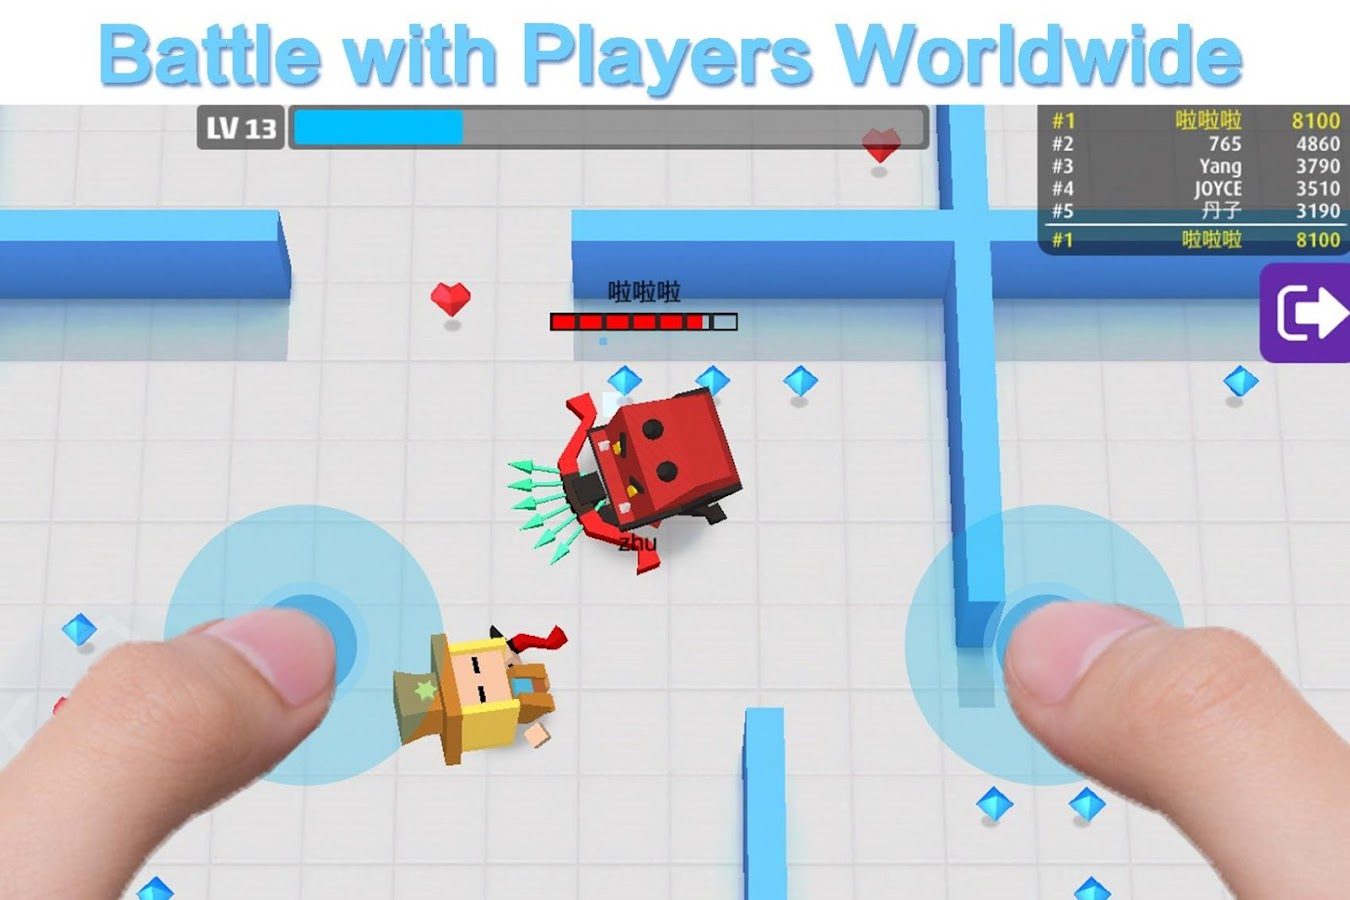 Game creator apk 1 0 40 full – cepmexiwebs